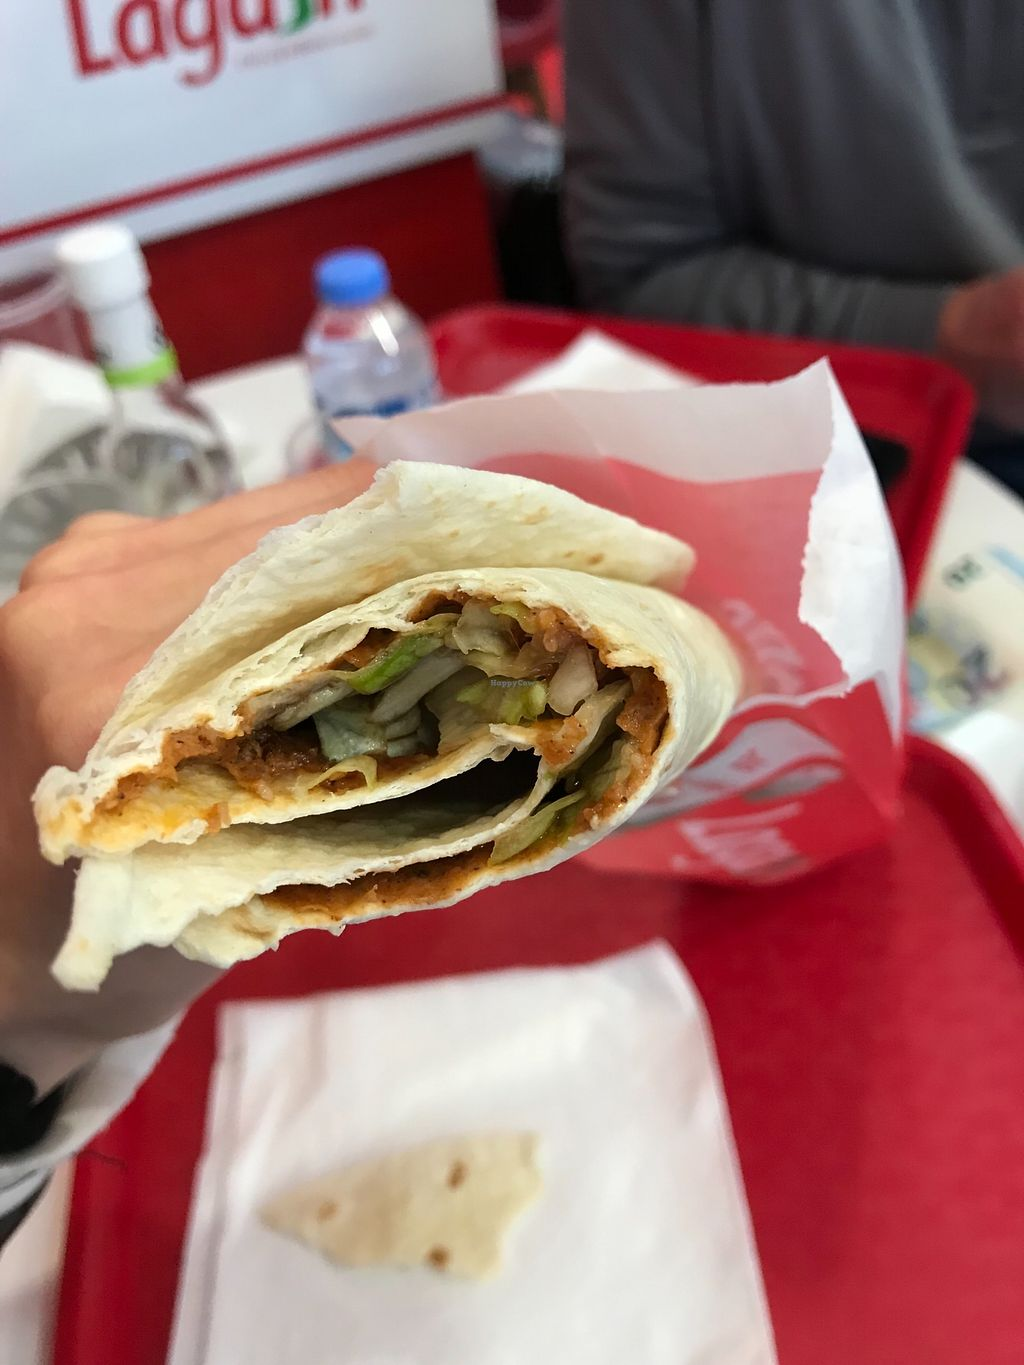 """Photo of Lagash - Laeken  by <a href=""""/members/profile/madisonehaley"""">madisonehaley</a> <br/>cigköfte wrap!! comes with lettuce, tomato, pickles if you desire, pomegranate juice, and lemon juice <br/> March 28, 2018  - <a href='/contact/abuse/image/113115/377394'>Report</a>"""